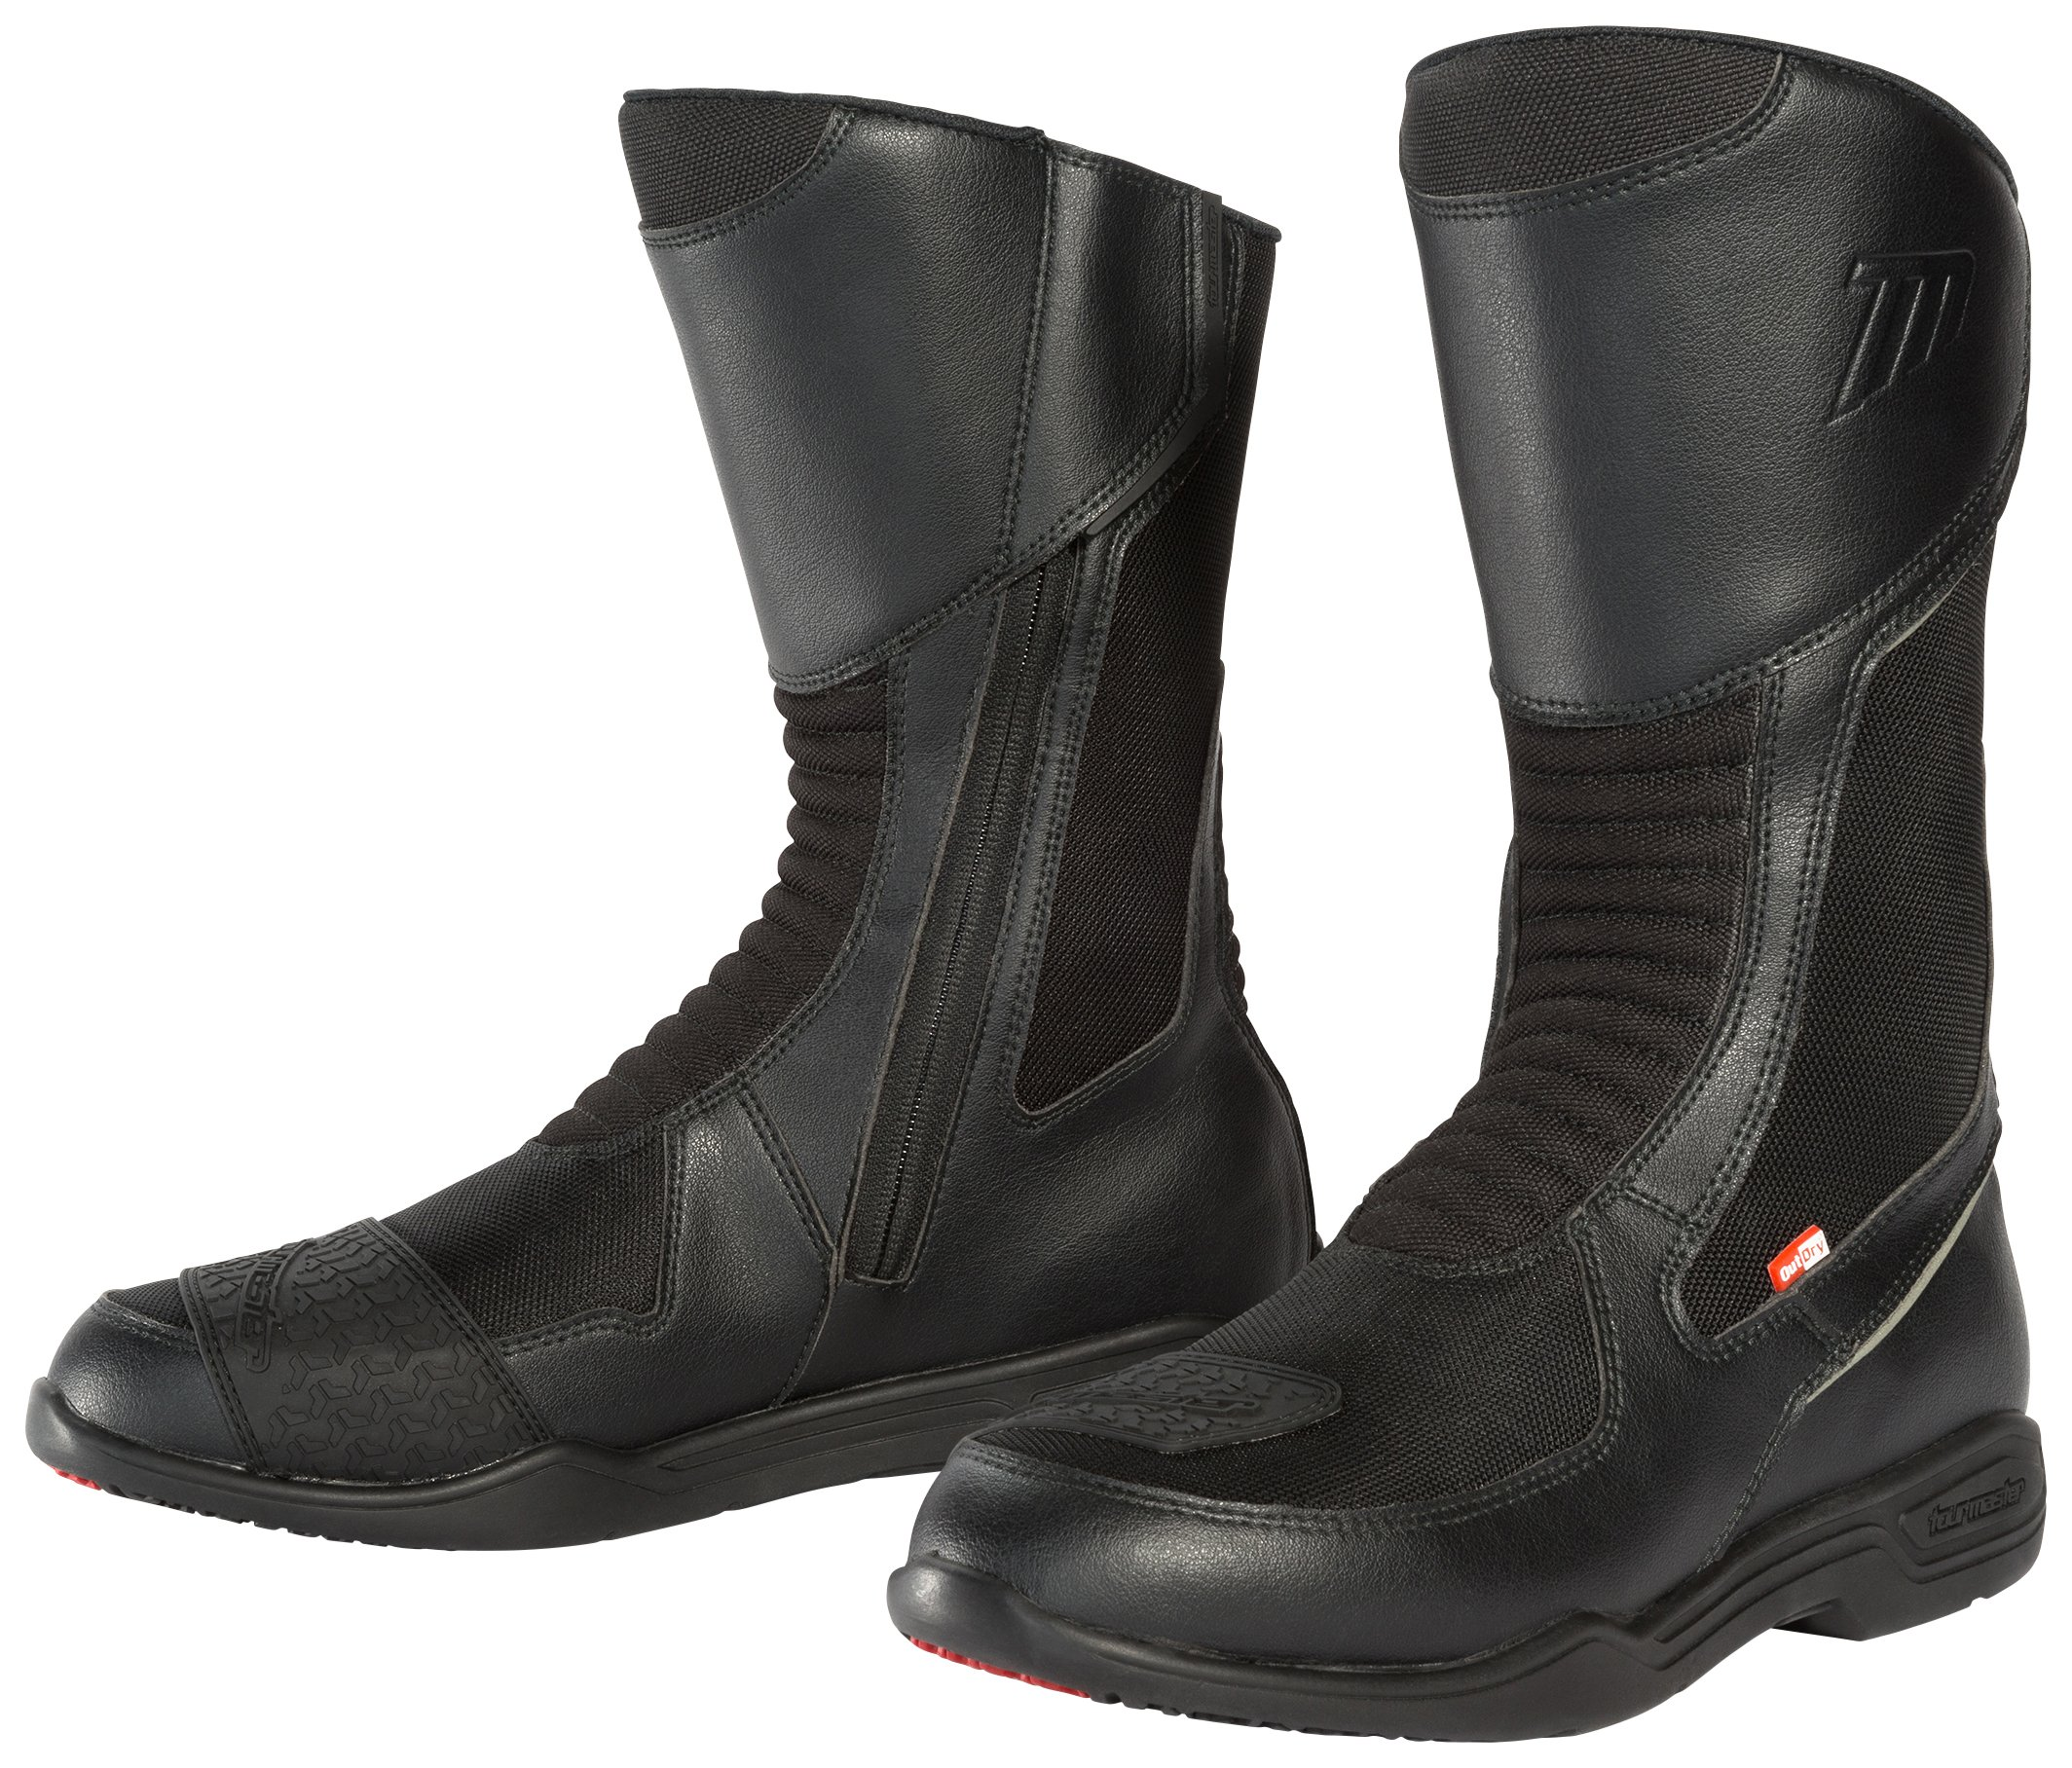 TourMaster Men's Epic Air Touring Motorcycle Boots (Black, Size 12) by Tourmaster